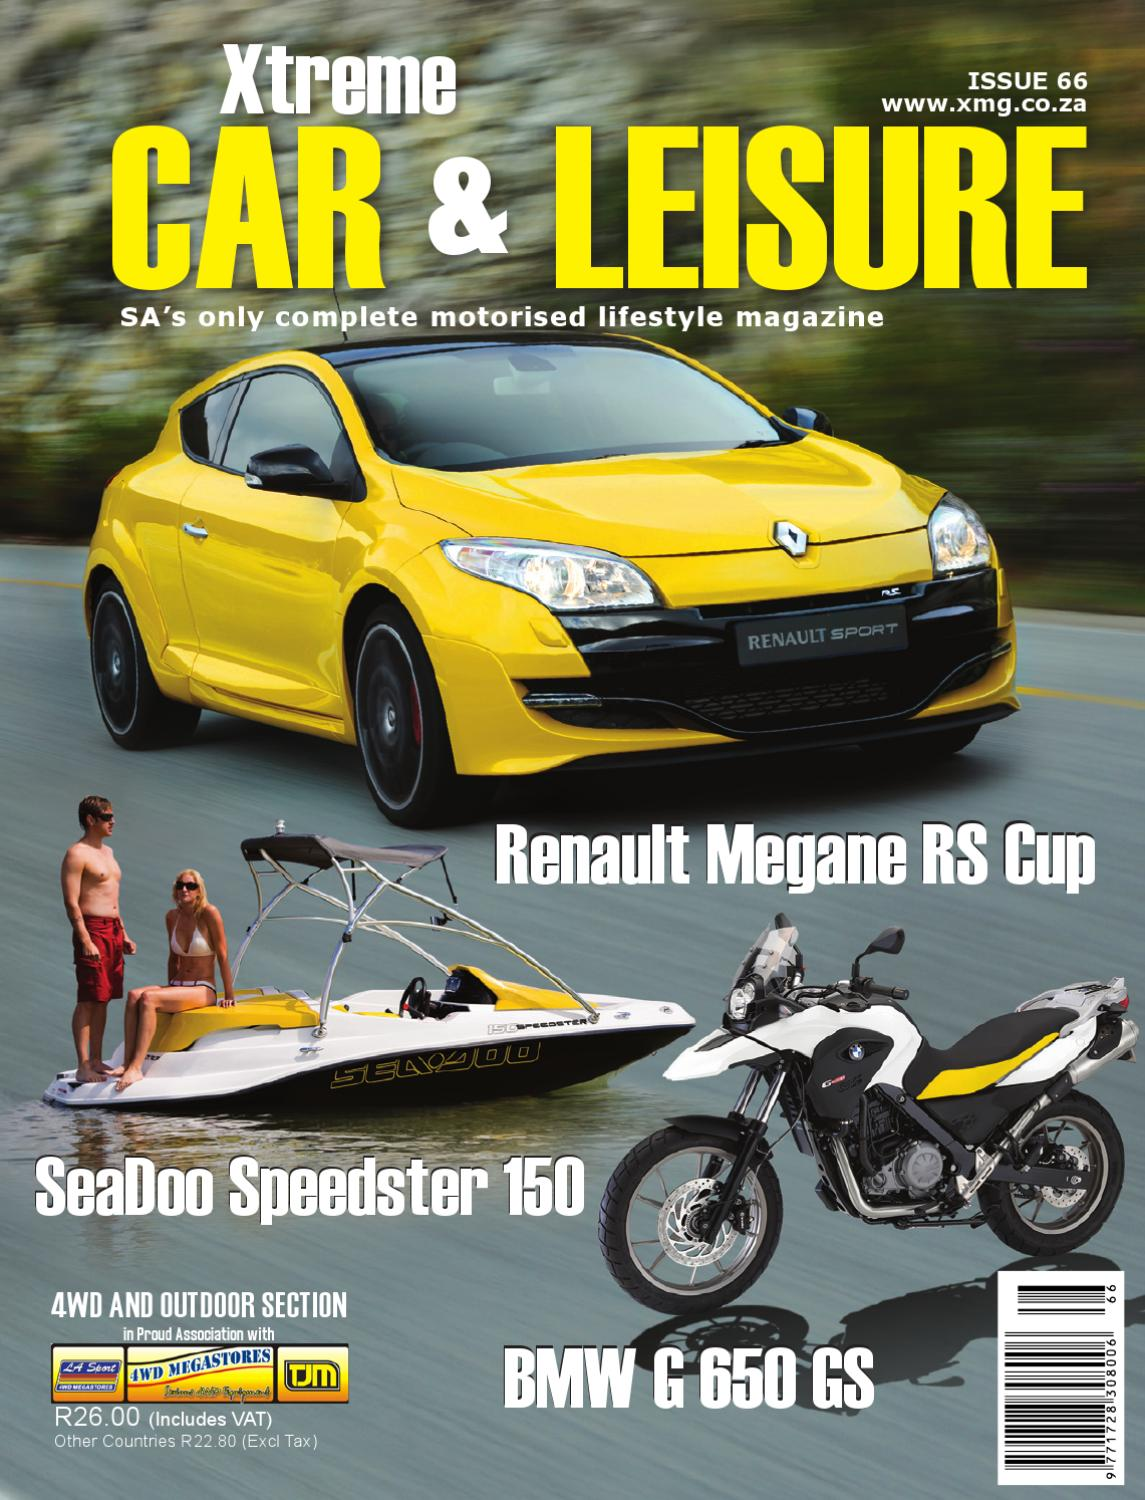 Extreme Car   Leisure Issue 66 by Car   Leisure - issuu f51cdc34d694c